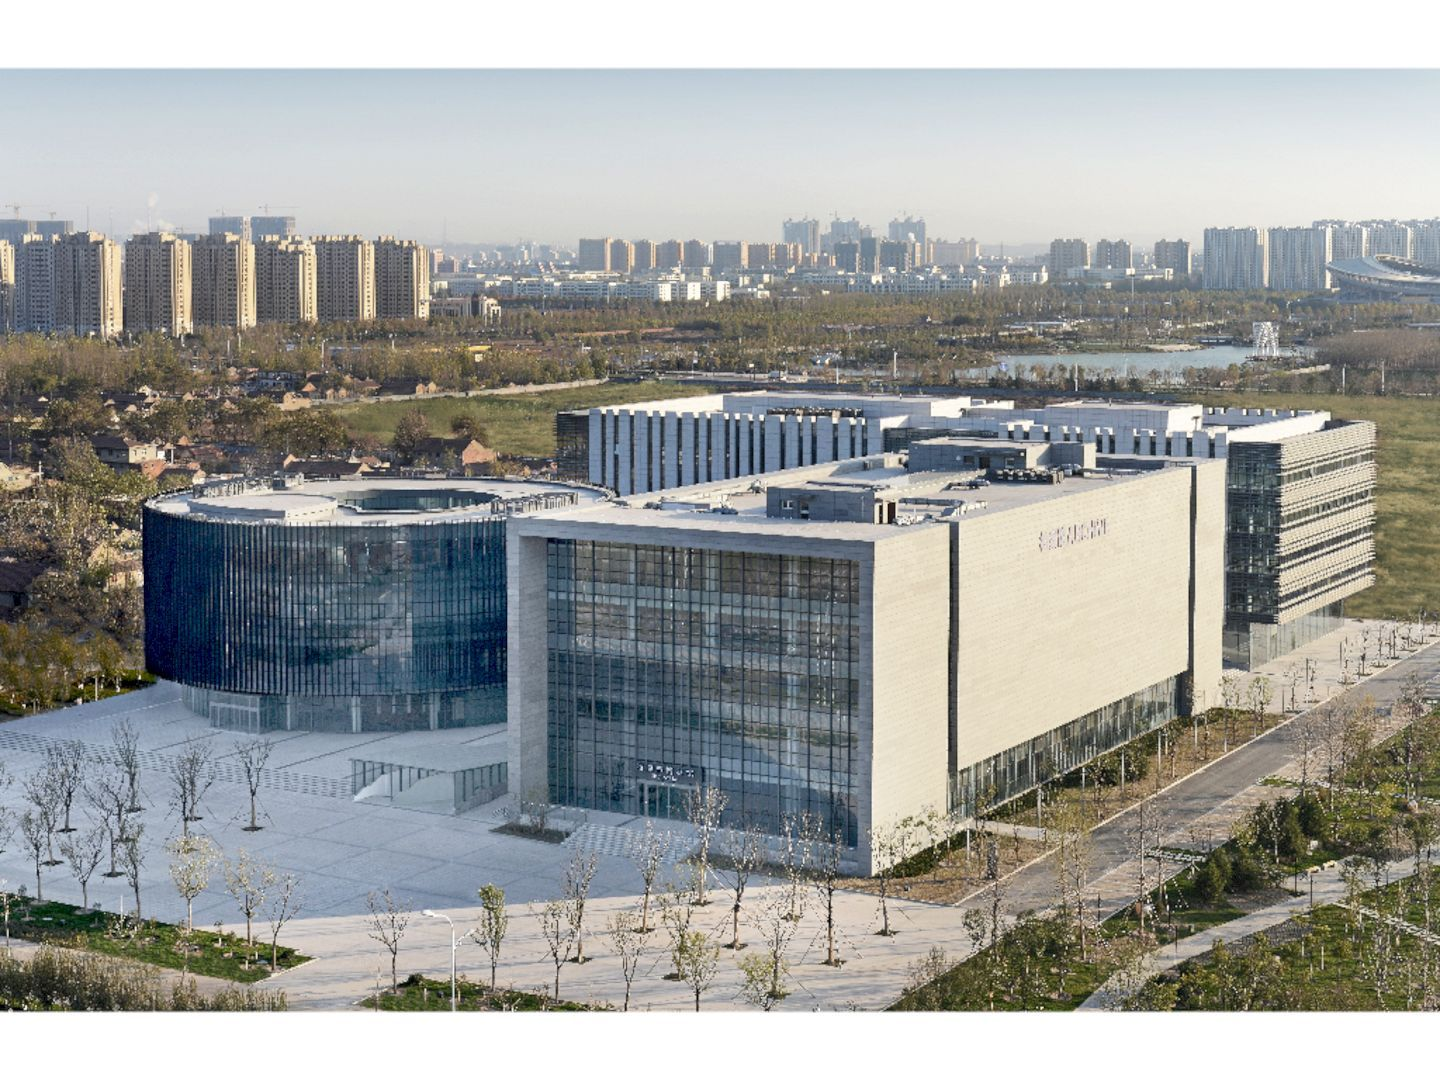 Zibo Culture Center: The Knowledge Center in Zibo, China | Knowledge on house inside a china, homes in china, small apartment designs in china,